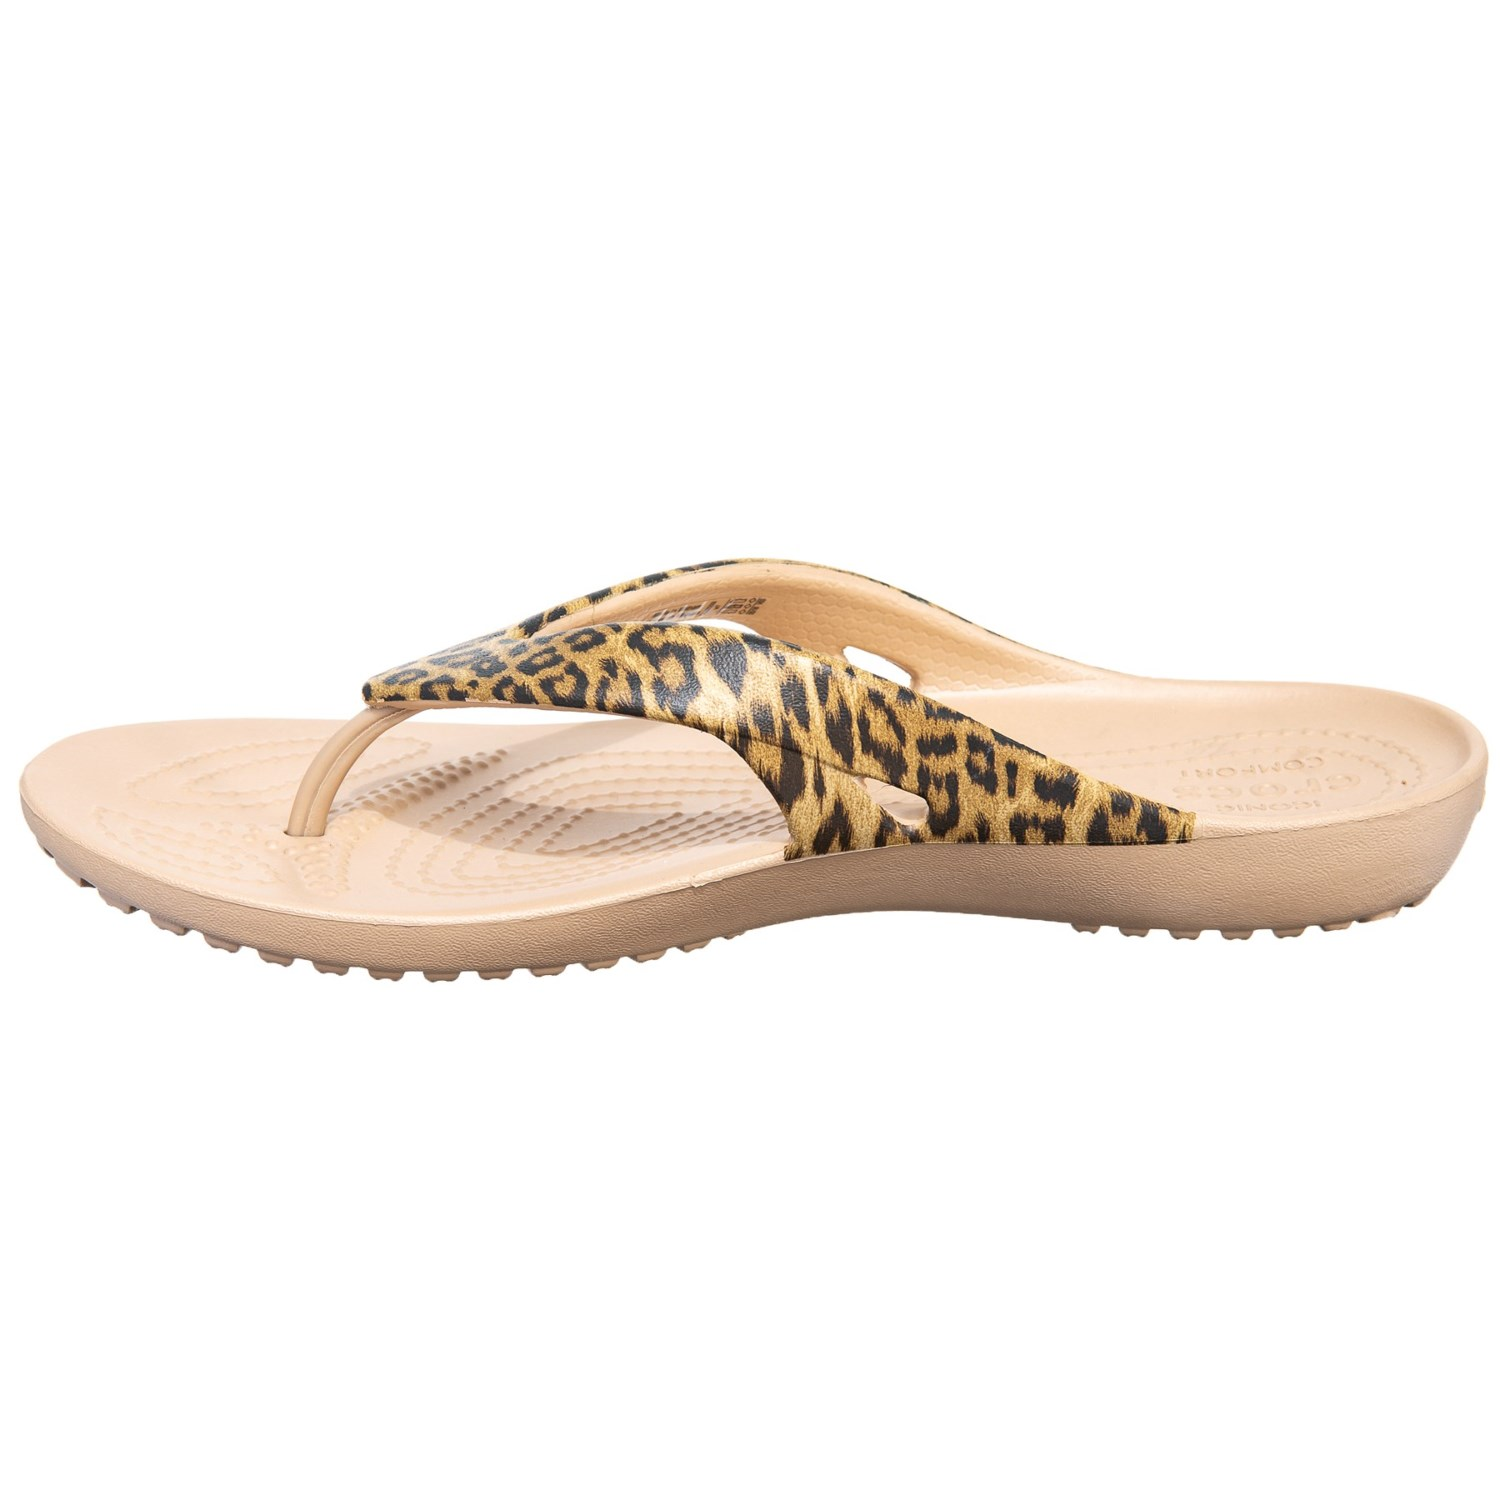 436ac5388a02 Crocs Kadee II Leopard Print Flip-Flops (For Women) - Save 33%